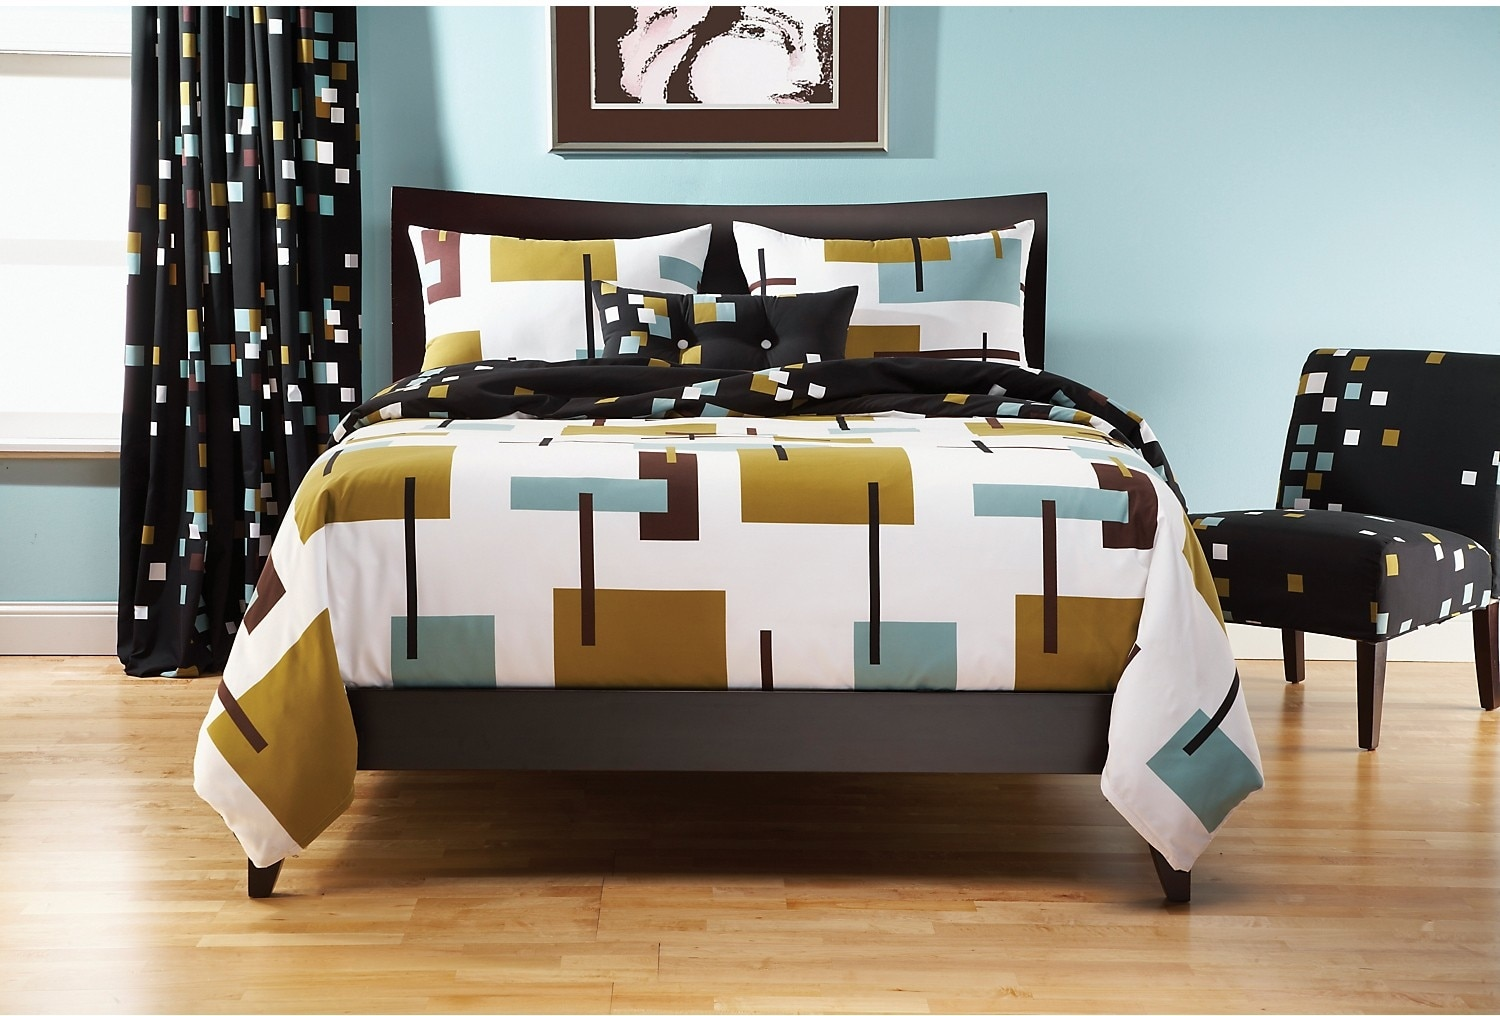 Mattresses and Bedding - Reconstruction Full Duvet Cover Set